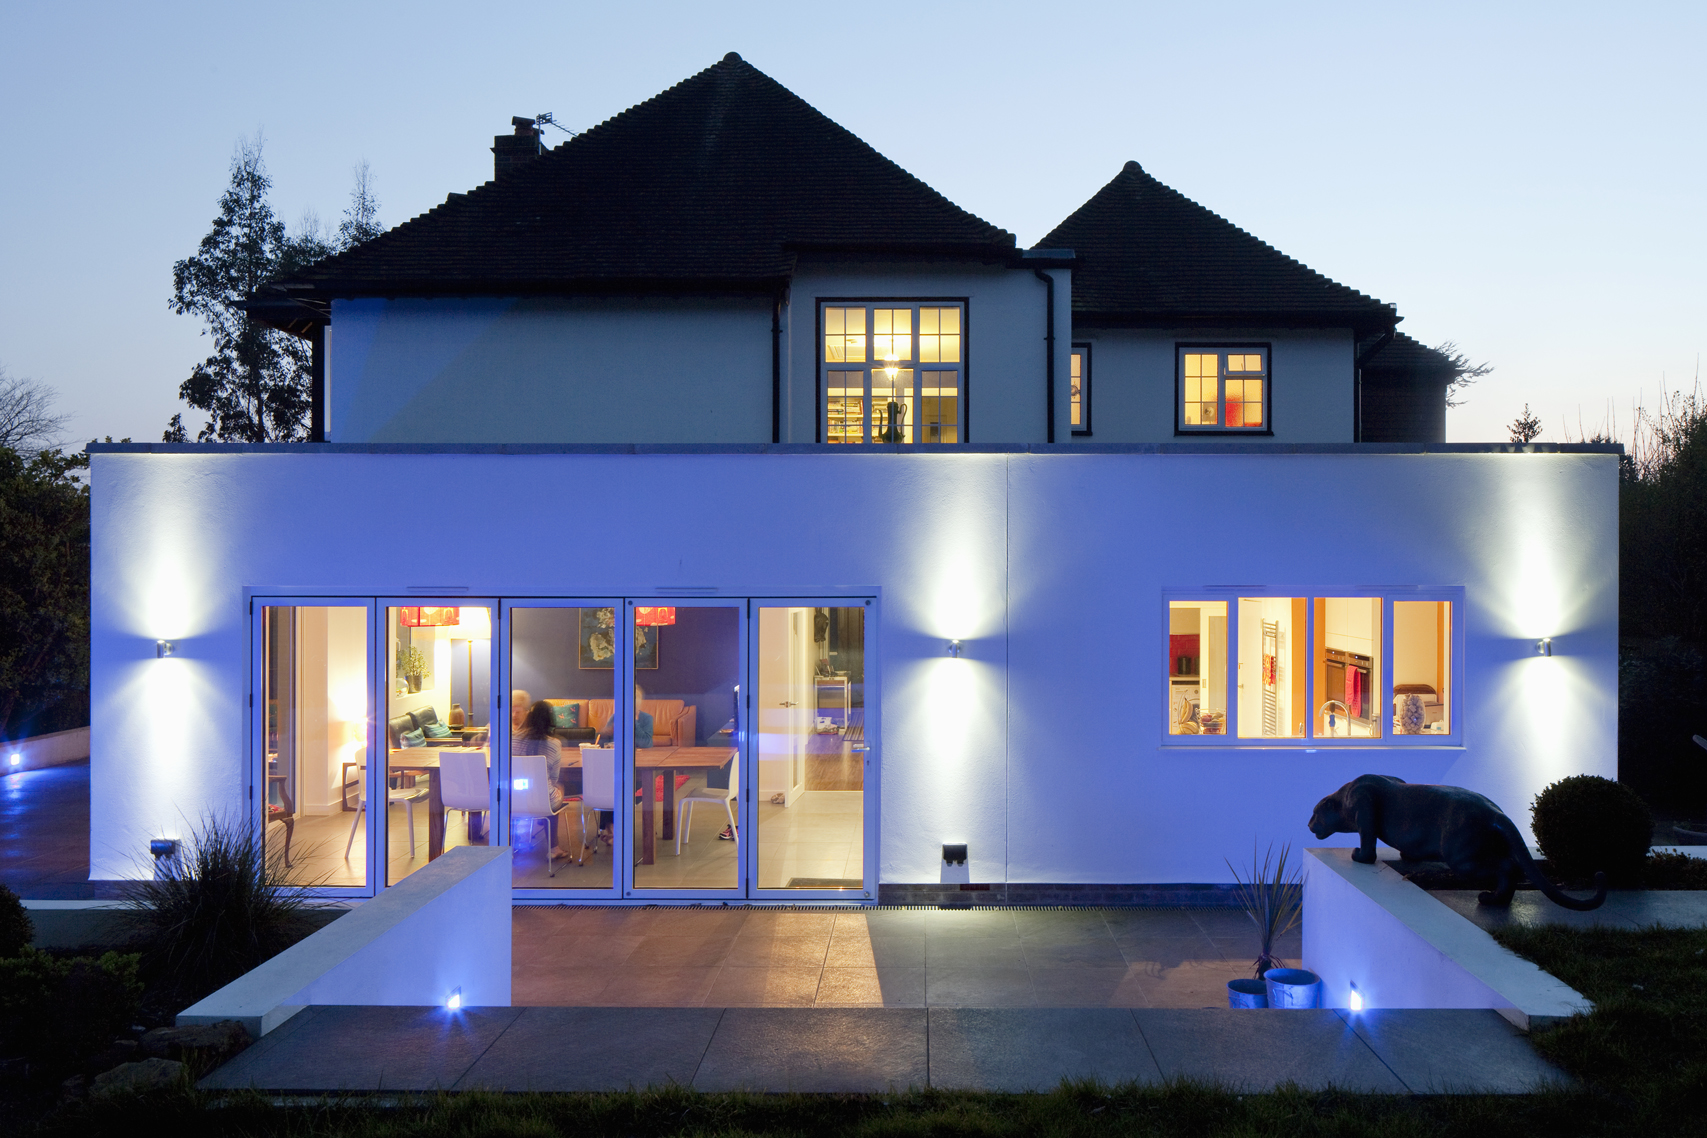 rear view of single storey extension at night